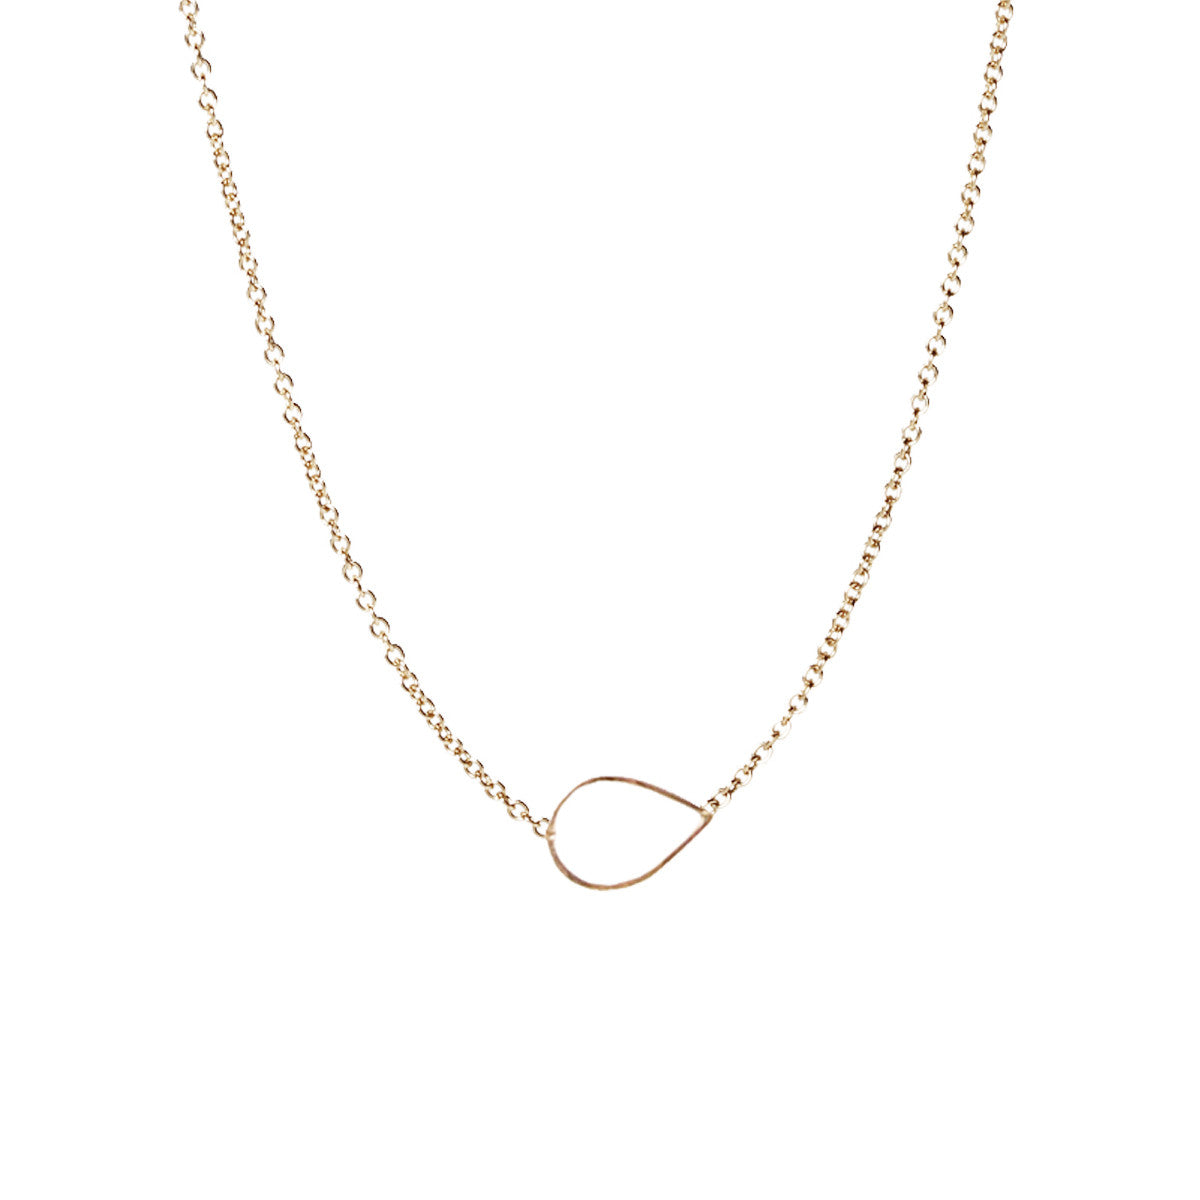 14k tiny hammered tear necklace